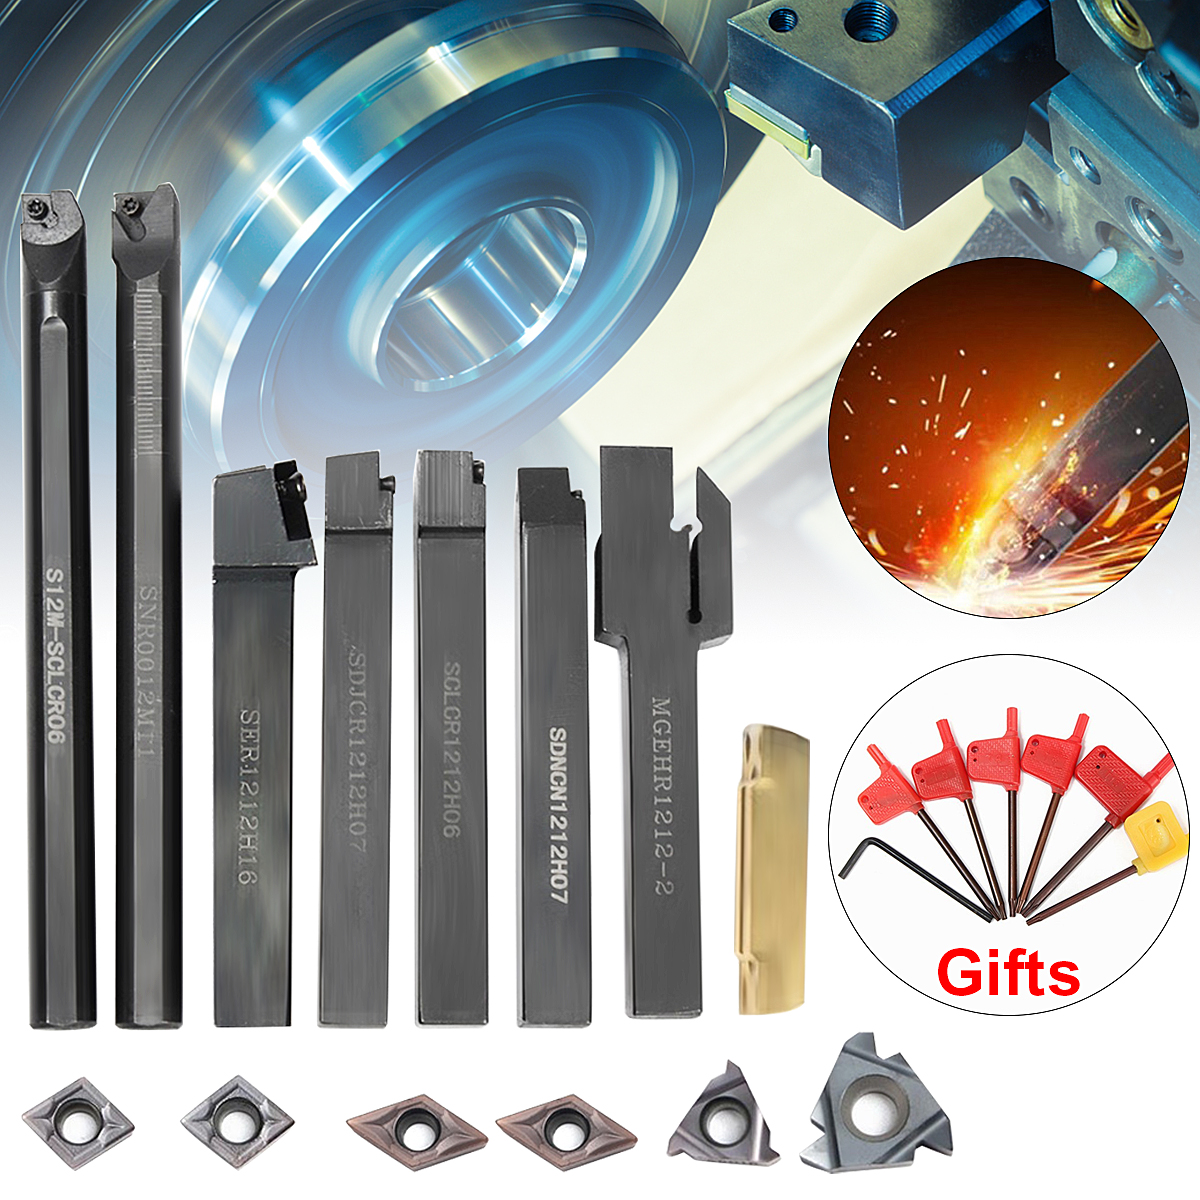 21PCS/SET Shank Lathe Turning Tool Holder Boring Bar With DCMT CCMT Carbide Insert And  Wrenches For Lathe Turning Tool